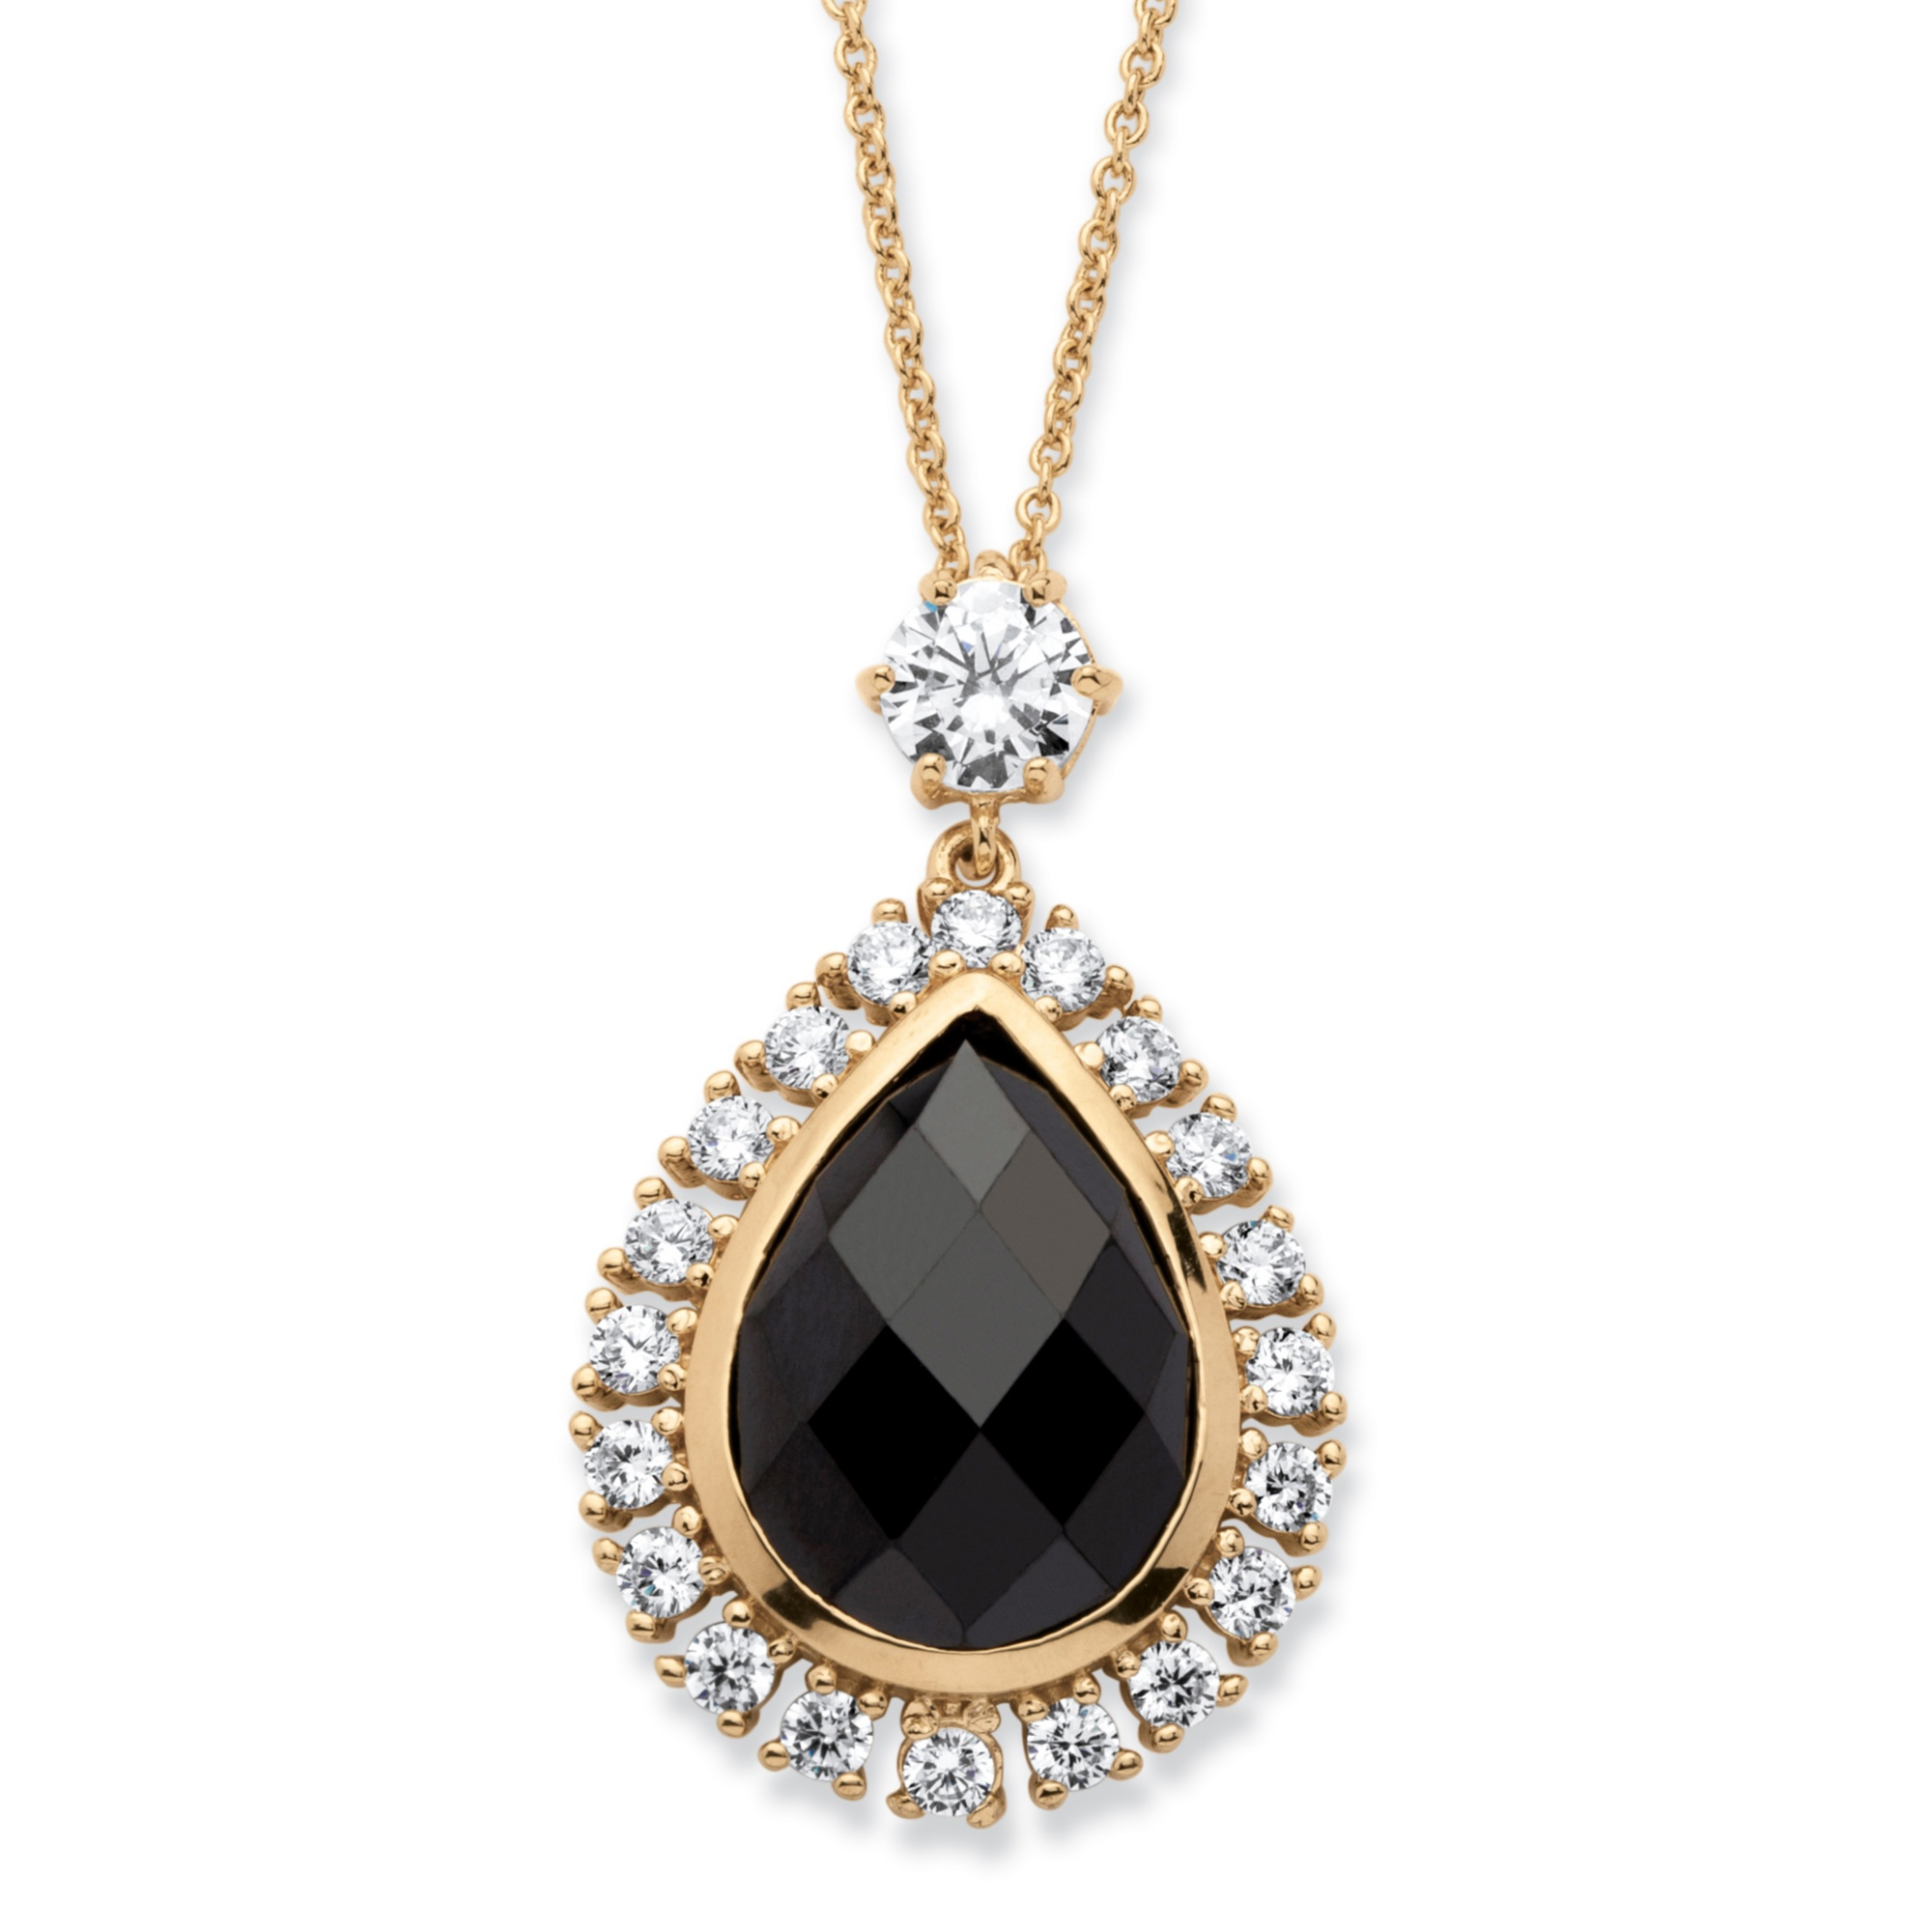 13.84 TCW Black Checkerboard-Cut Cubic Zirconia Bezel-Set Halo Necklace 14k Yellow Gold-Plated